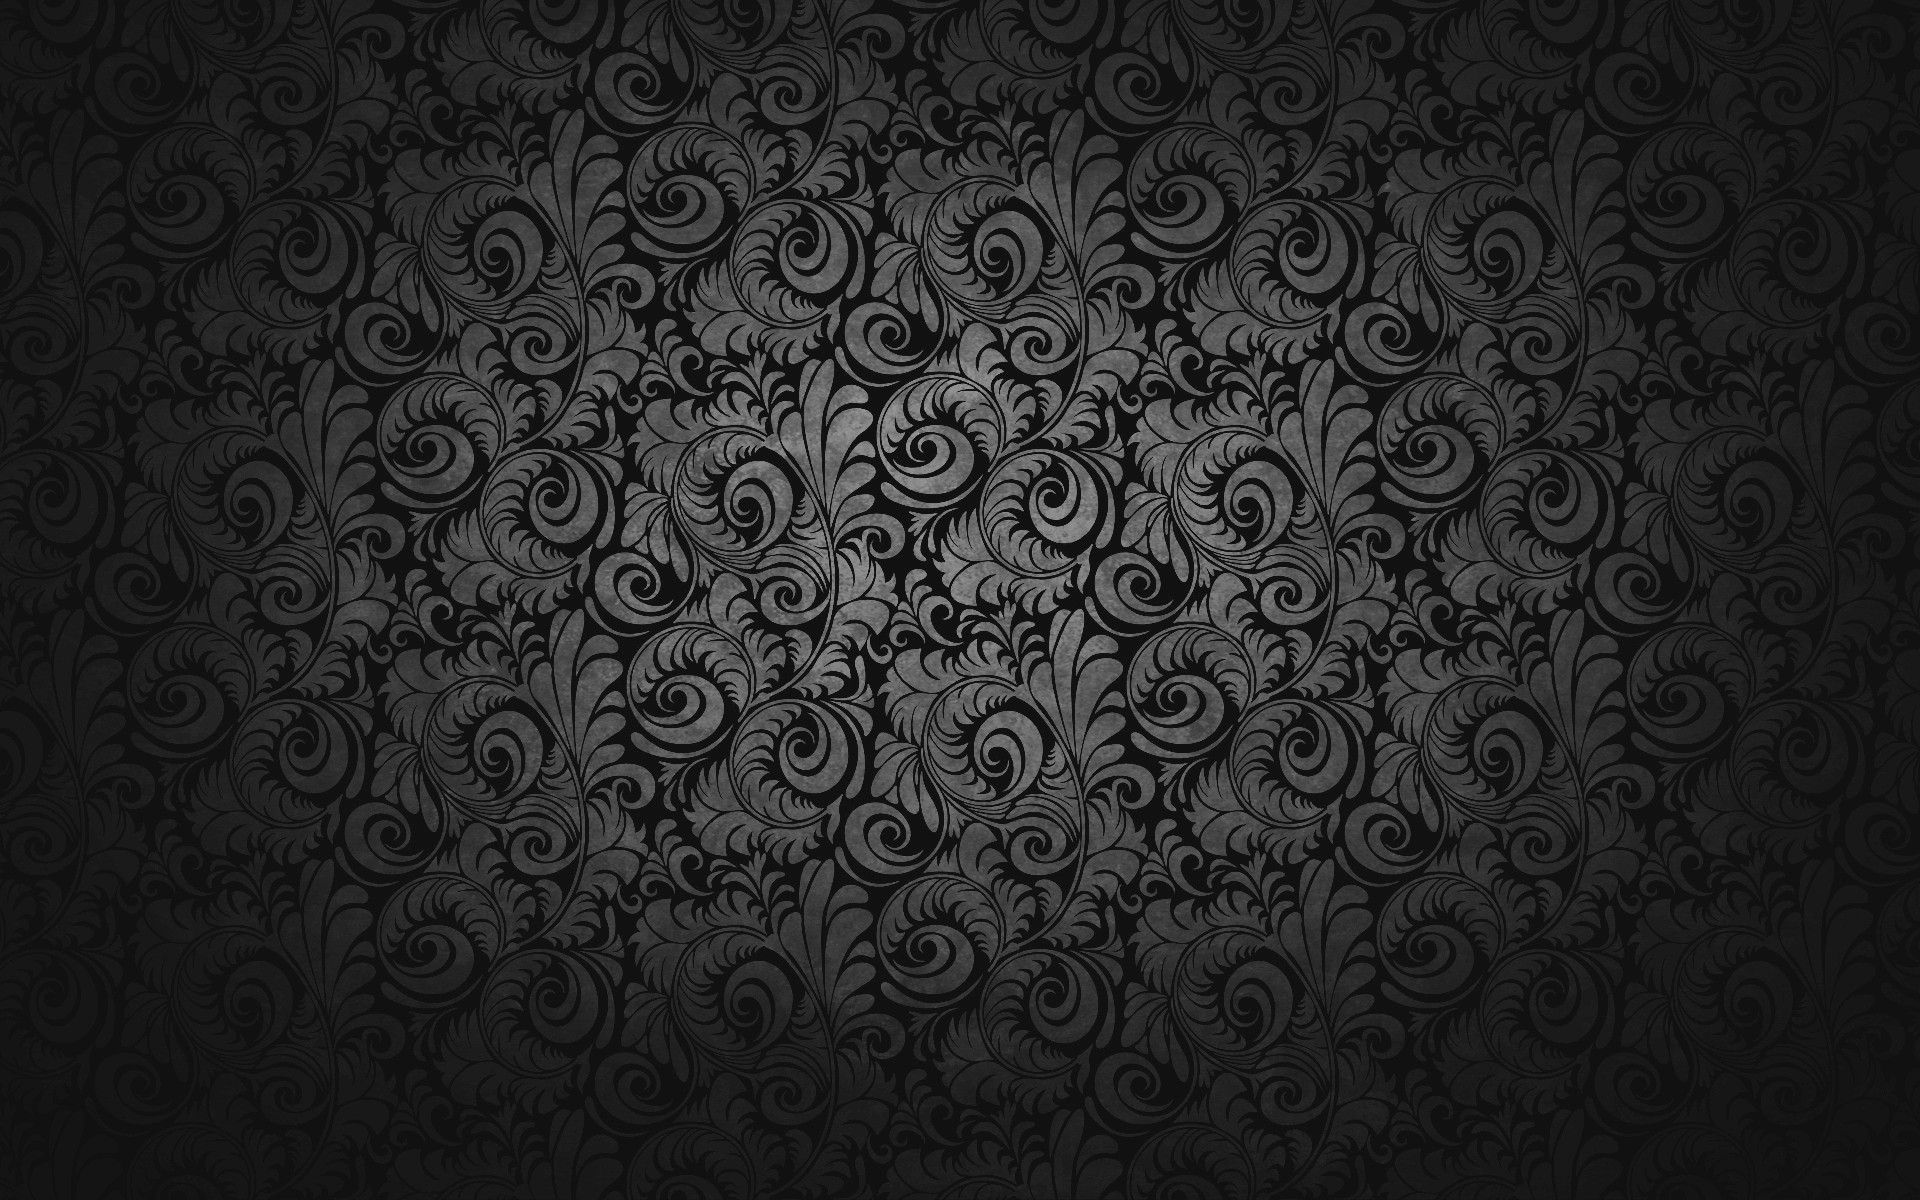 Black Wallpaper 28 1920x1200